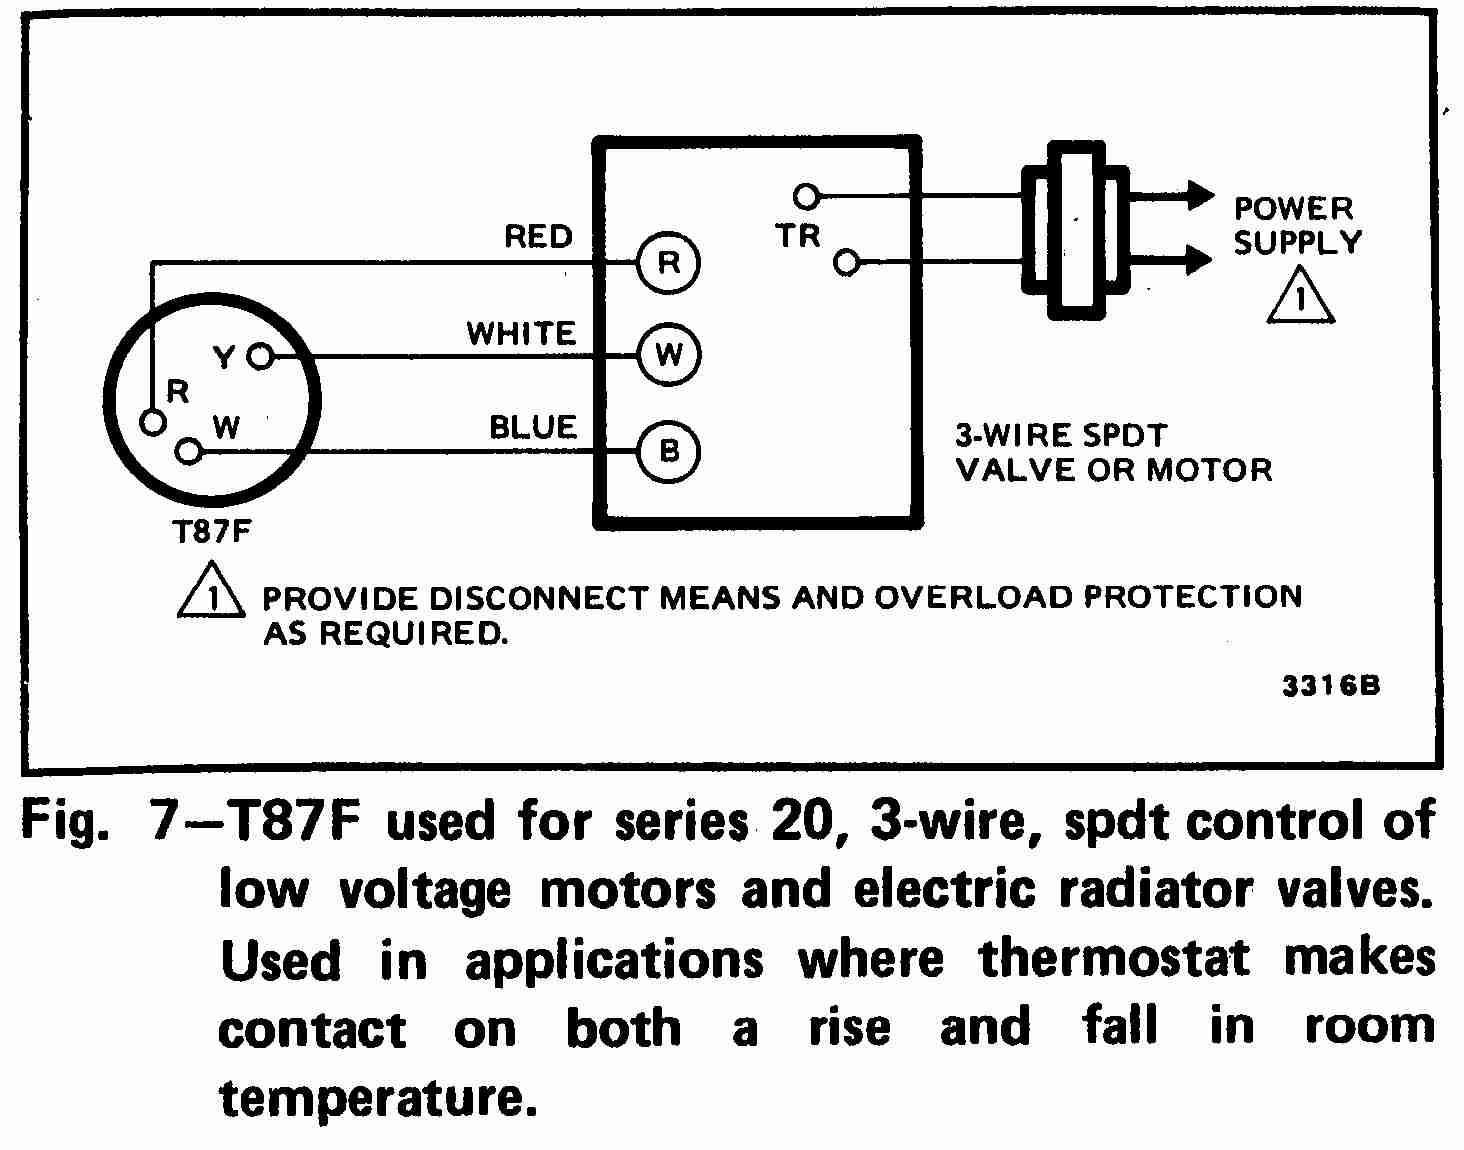 Standard Heat Only Thermostat Wiring Diagram | Wiring Diagram - 2 Wire Thermostat Wiring Diagram Heat Only